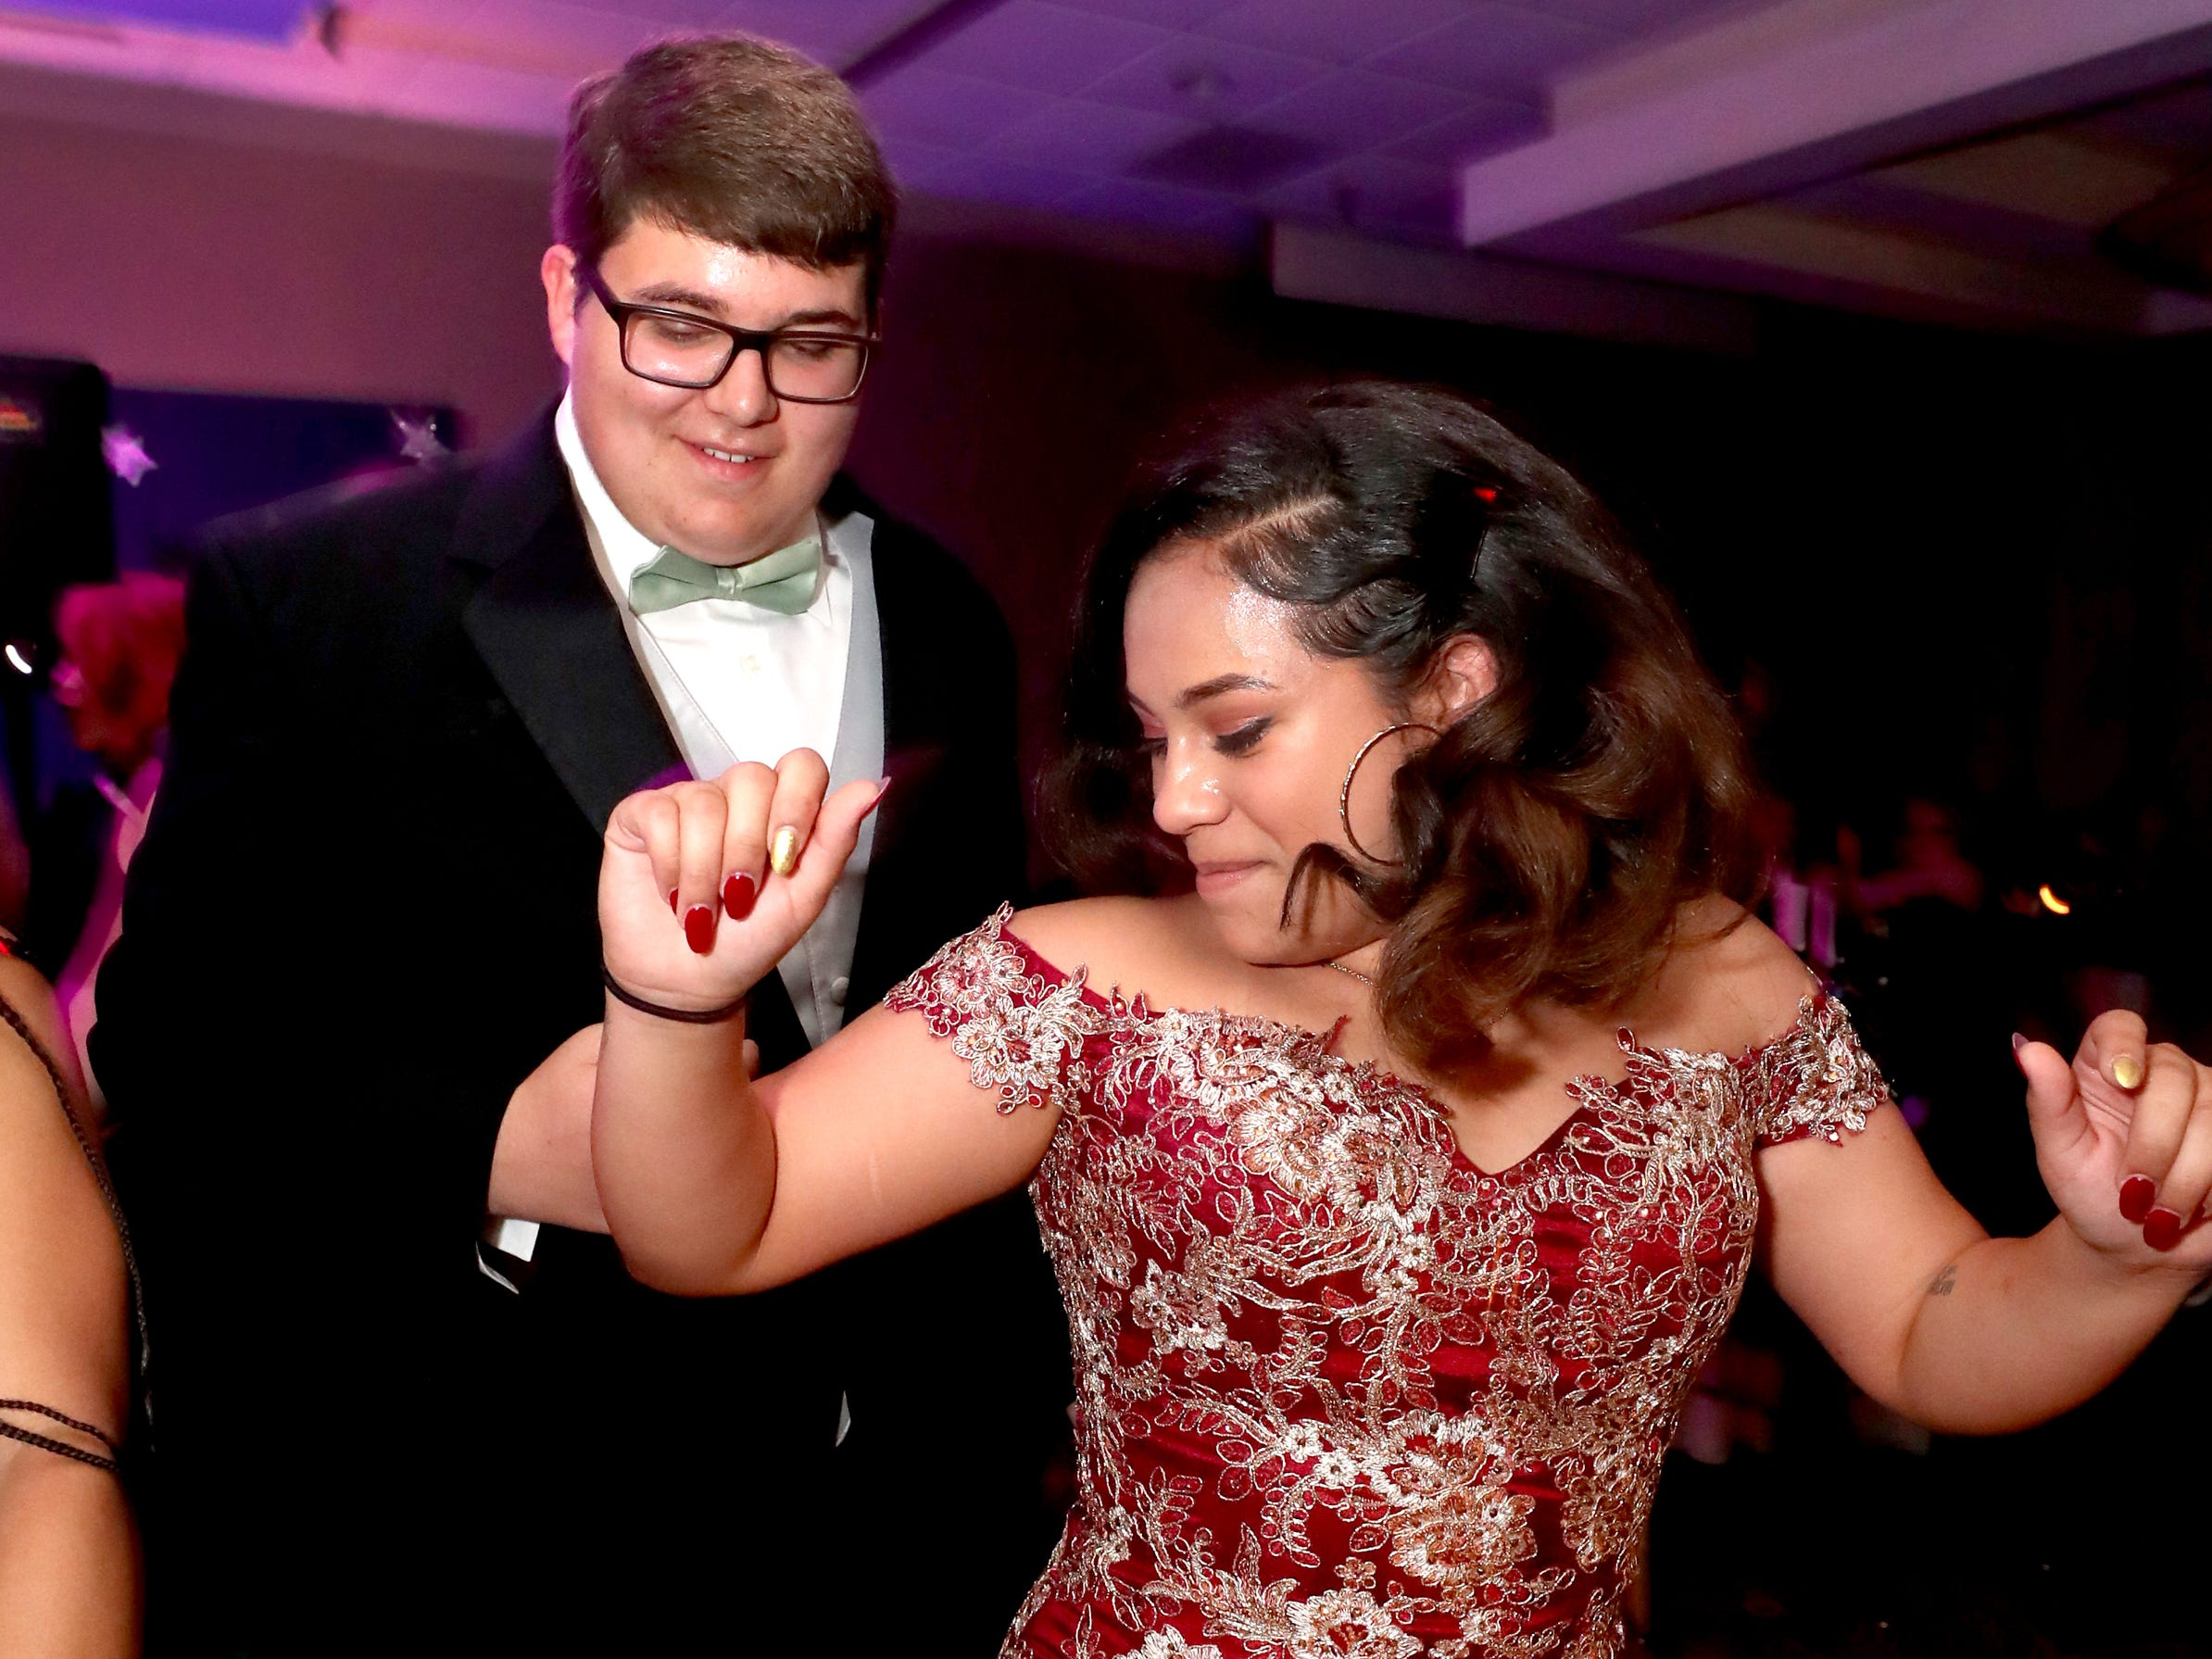 Nate Steinhurst, left and Elizabeth Perez, right  dance on the dance floor at Holloway's prom at the DoubleTree on Thursday April 18, 2019.